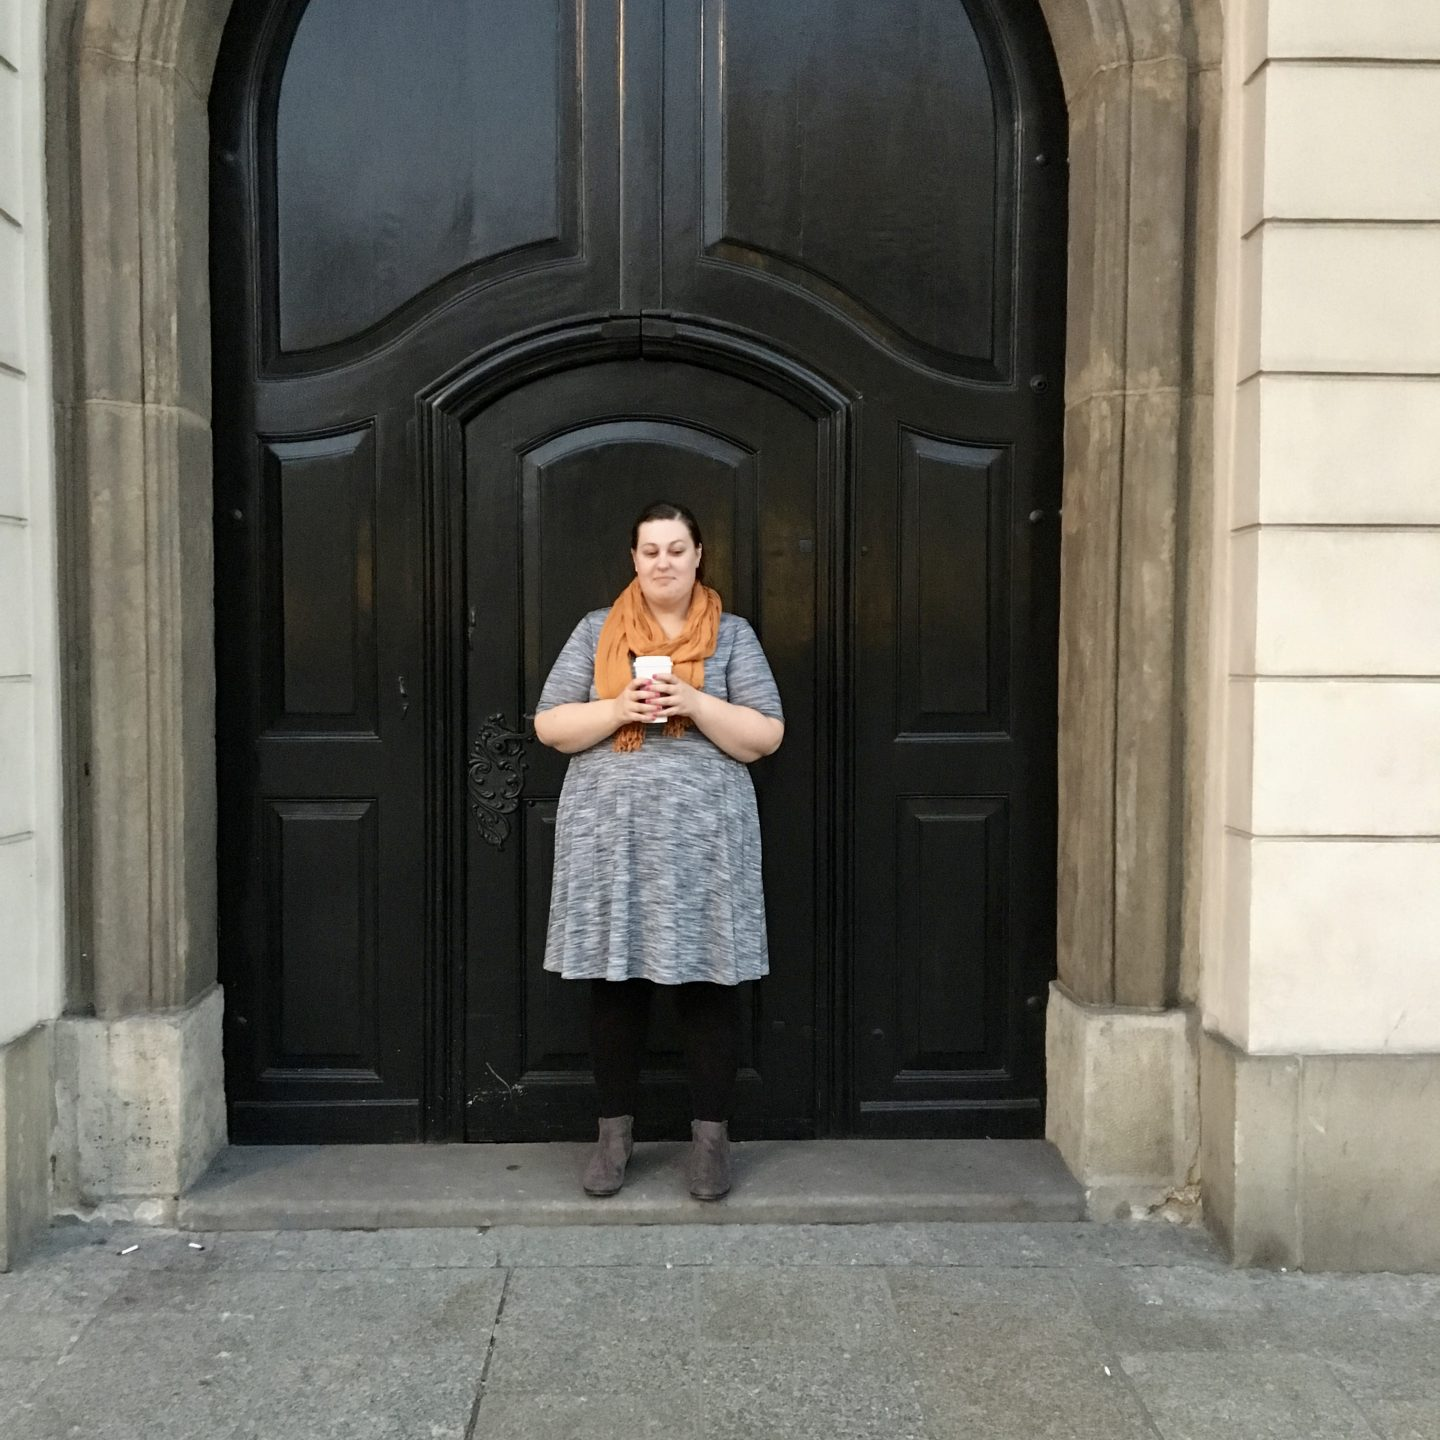 Natasha Theodora standing in front of a large brown door holding coffee